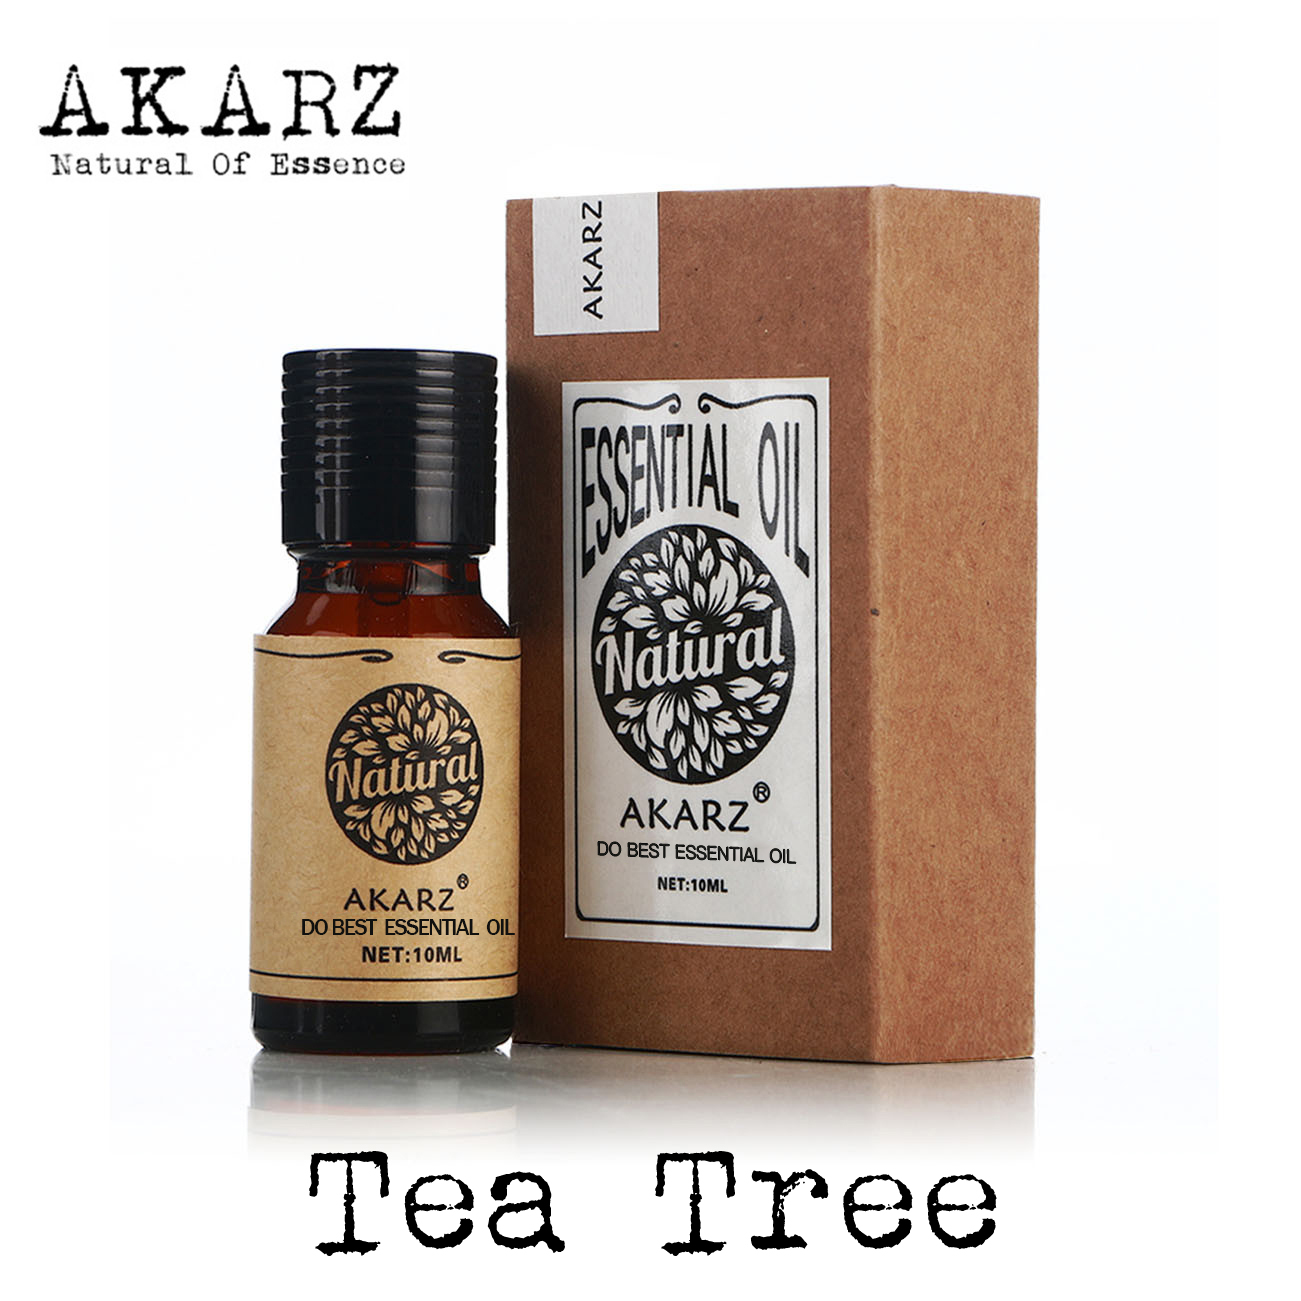 AKARZ Famous brand TEA TREE ESSENTIAL OIL NATURAL TREATMENT FOR ADULTS ORGANIC skin body massage care TEA TREE oil daiwei luxury evening bag crystal women party purse bags ladies wedding bridal formal clutch bags banquet bag day clutches bl082